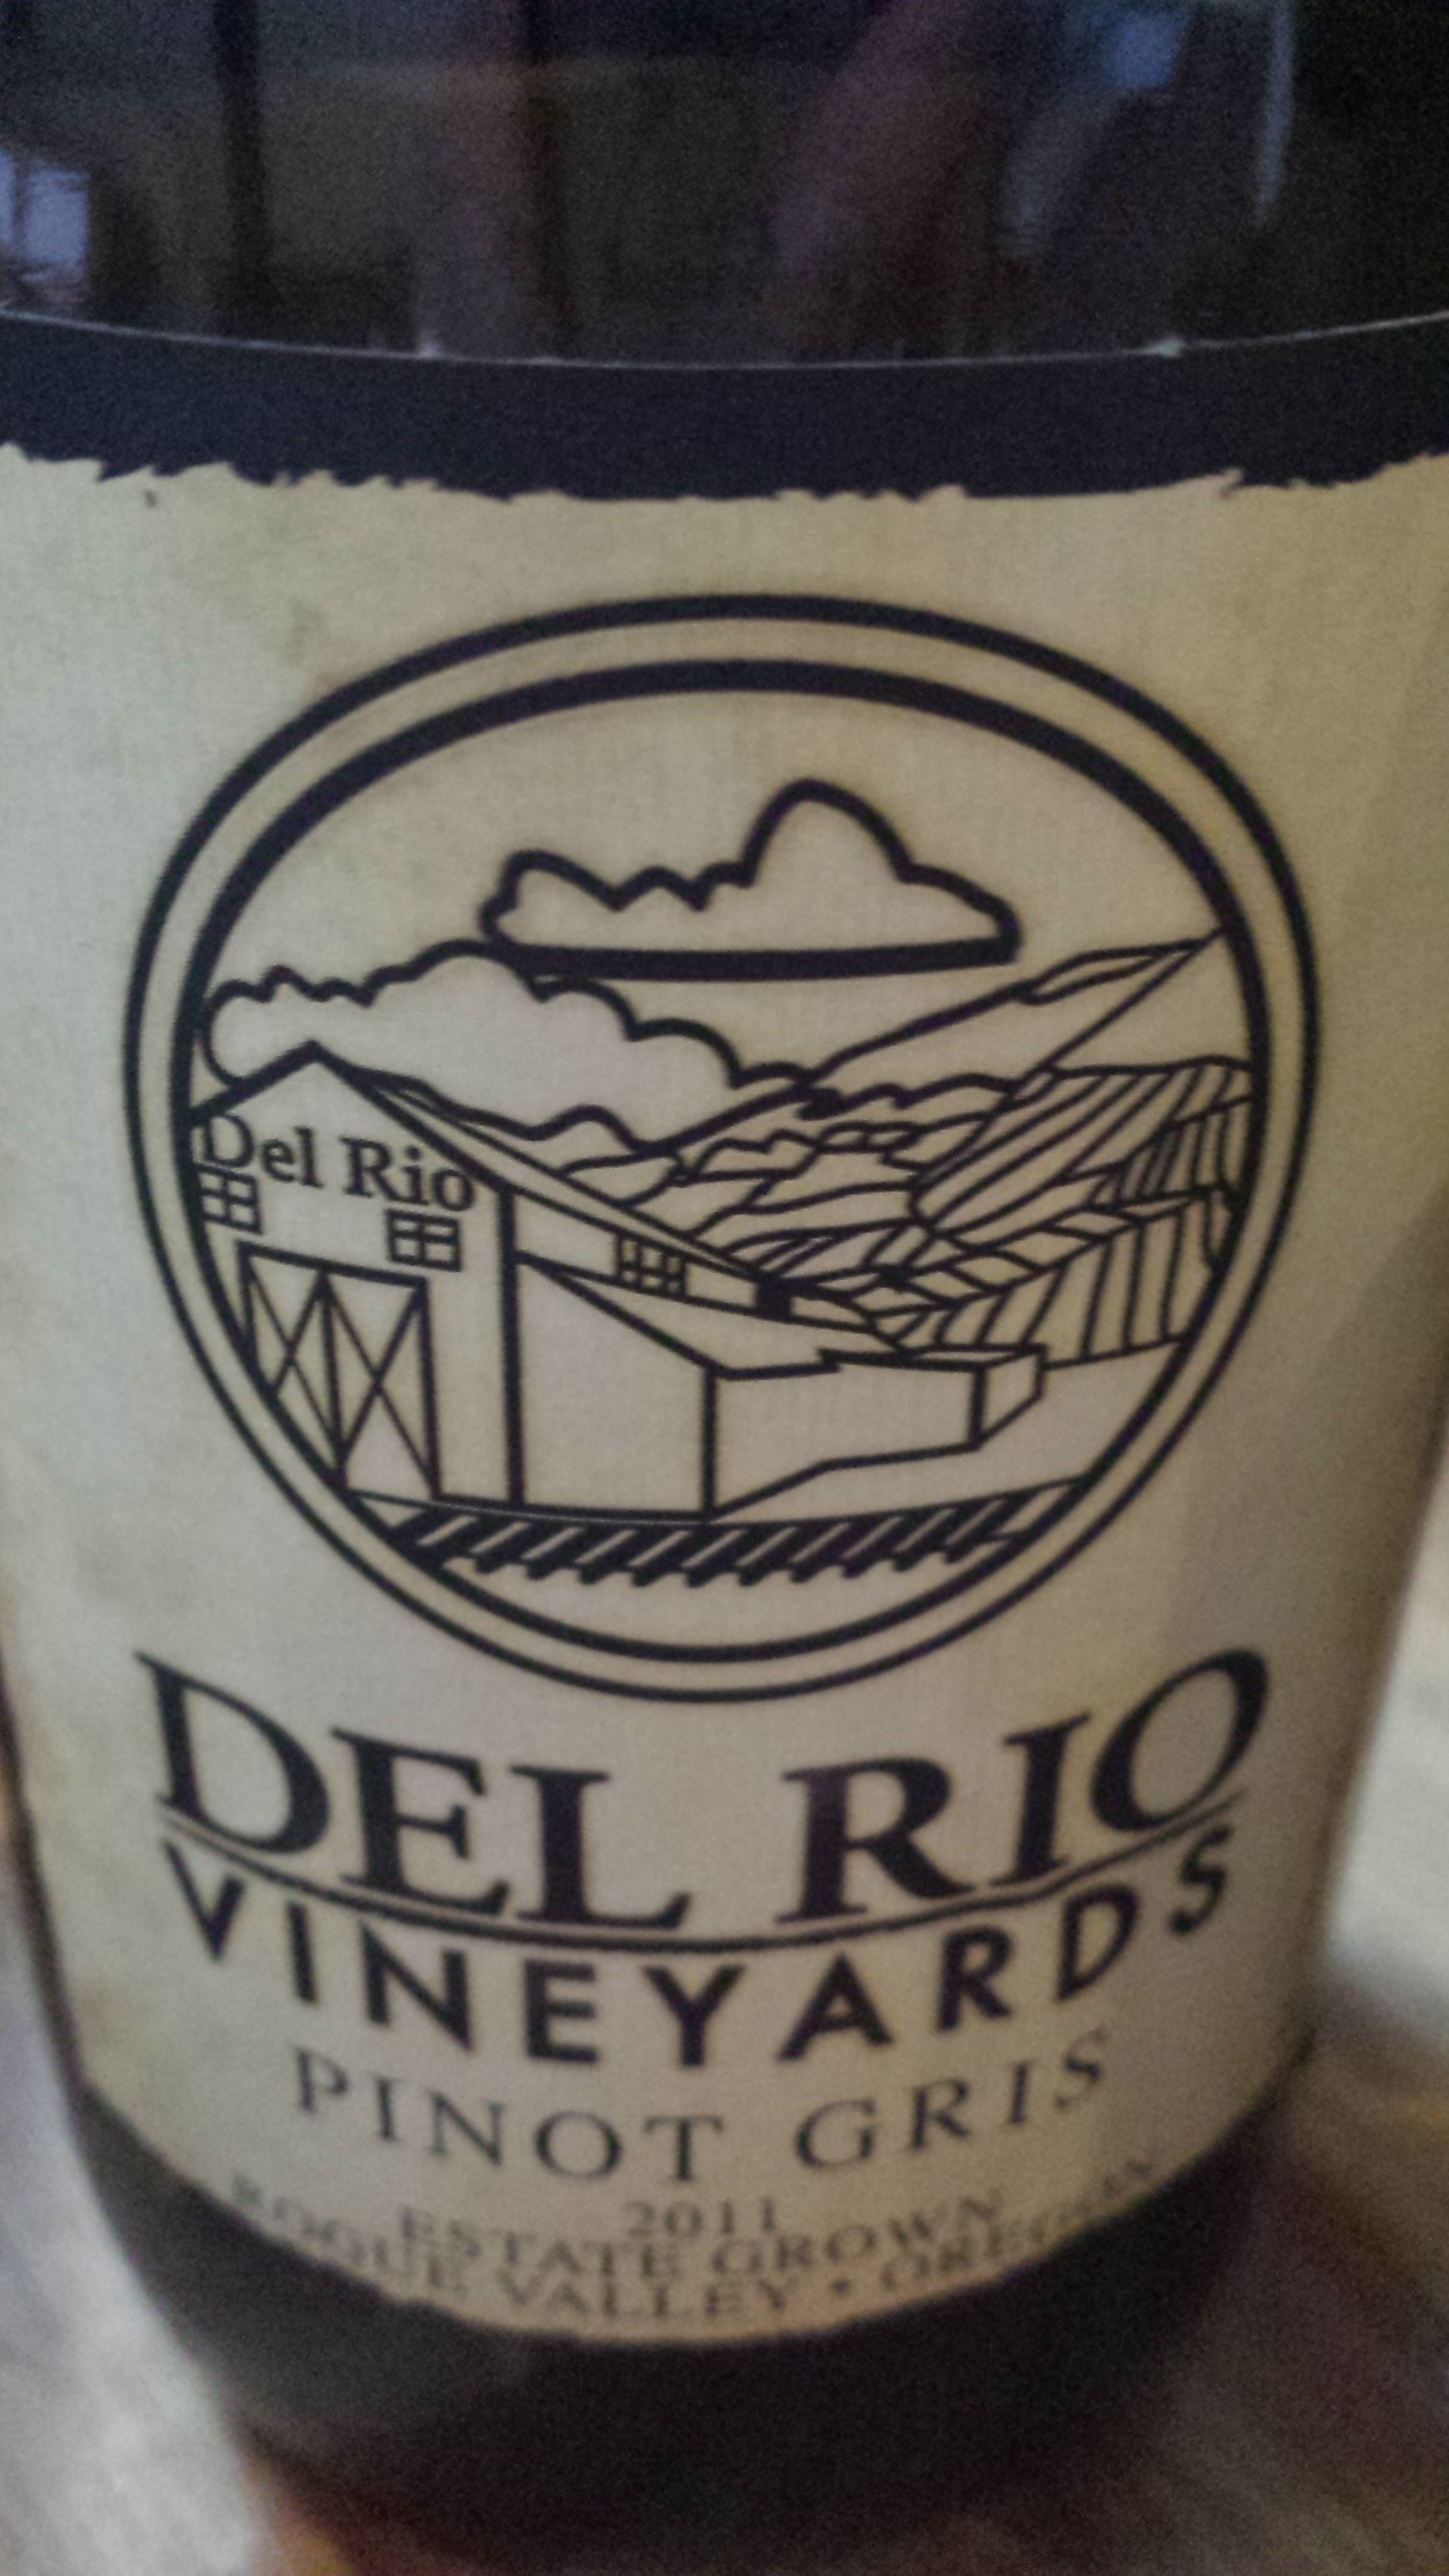 Del Rio Vineyards – Pinot Gris 2011 – Estate Grown – Rogue Valley